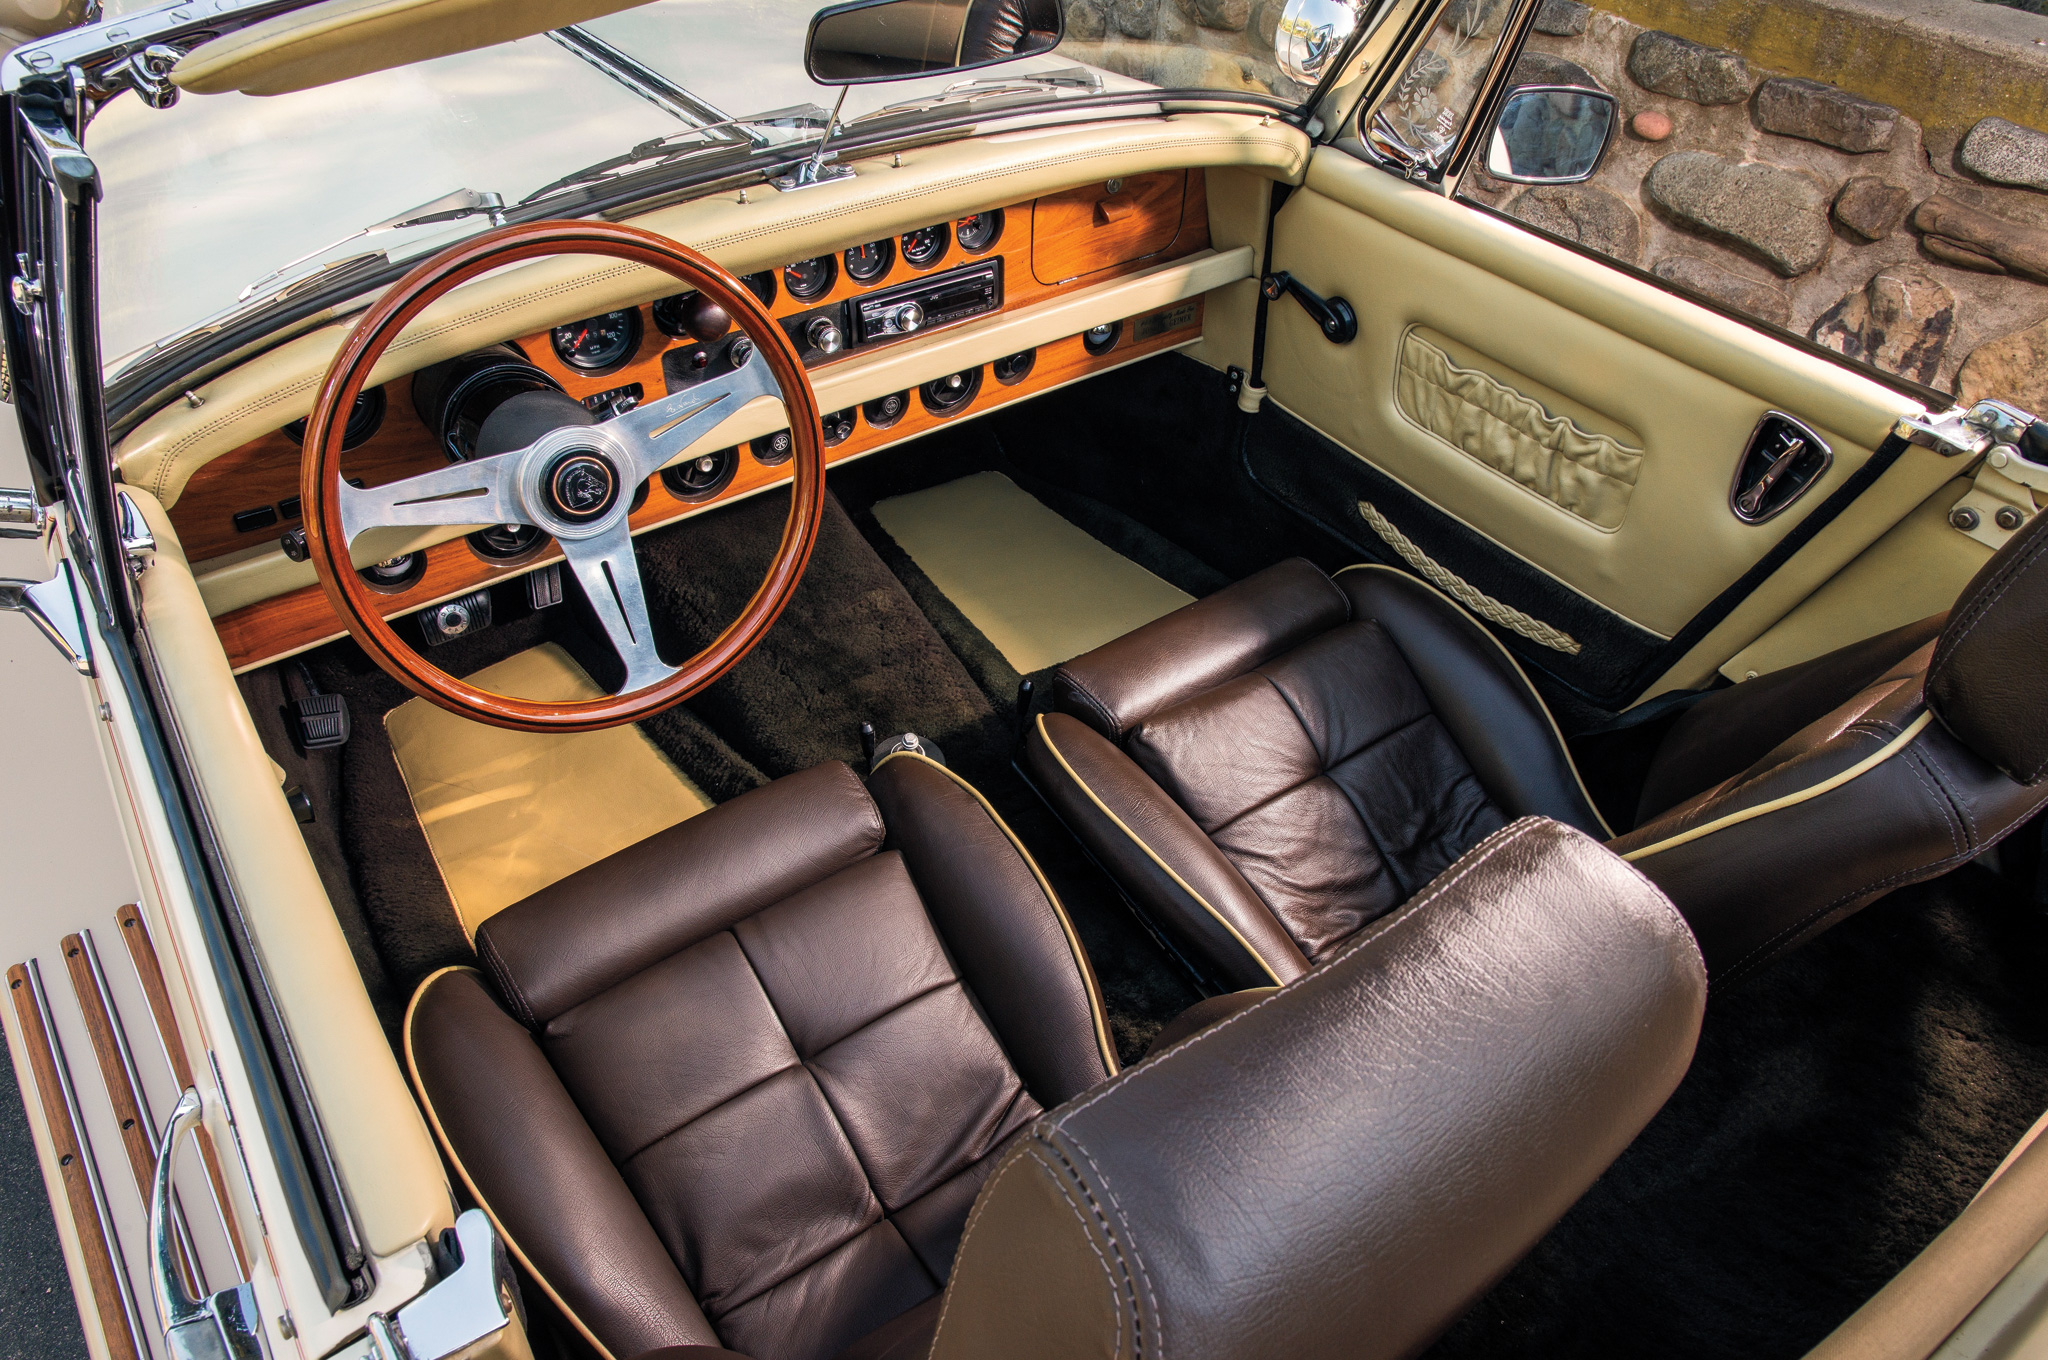 Handcrafted details were the stock-in-trade of neoclassics such as the Clénet Series I, including the teak shift knob for the three-speed automatic, plush leather seats, and horns, lots of horns.